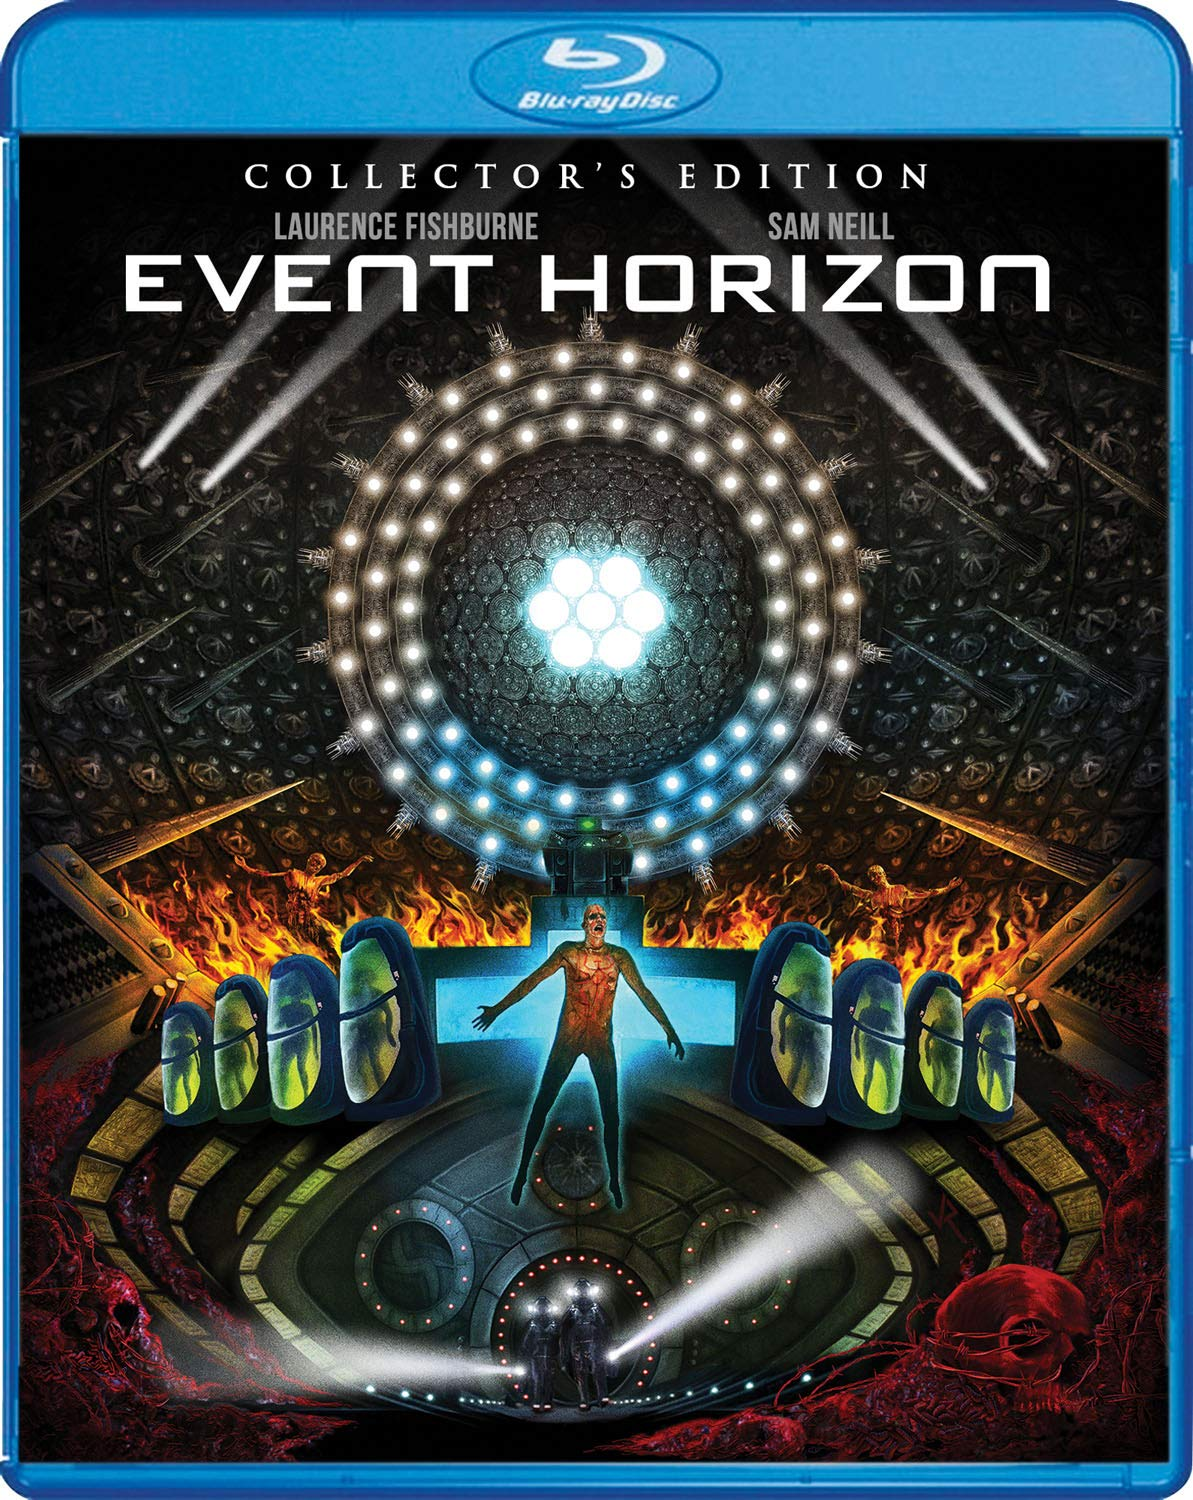 EVENT HORIZON SPECIAL FEATURES ANNOUNCED